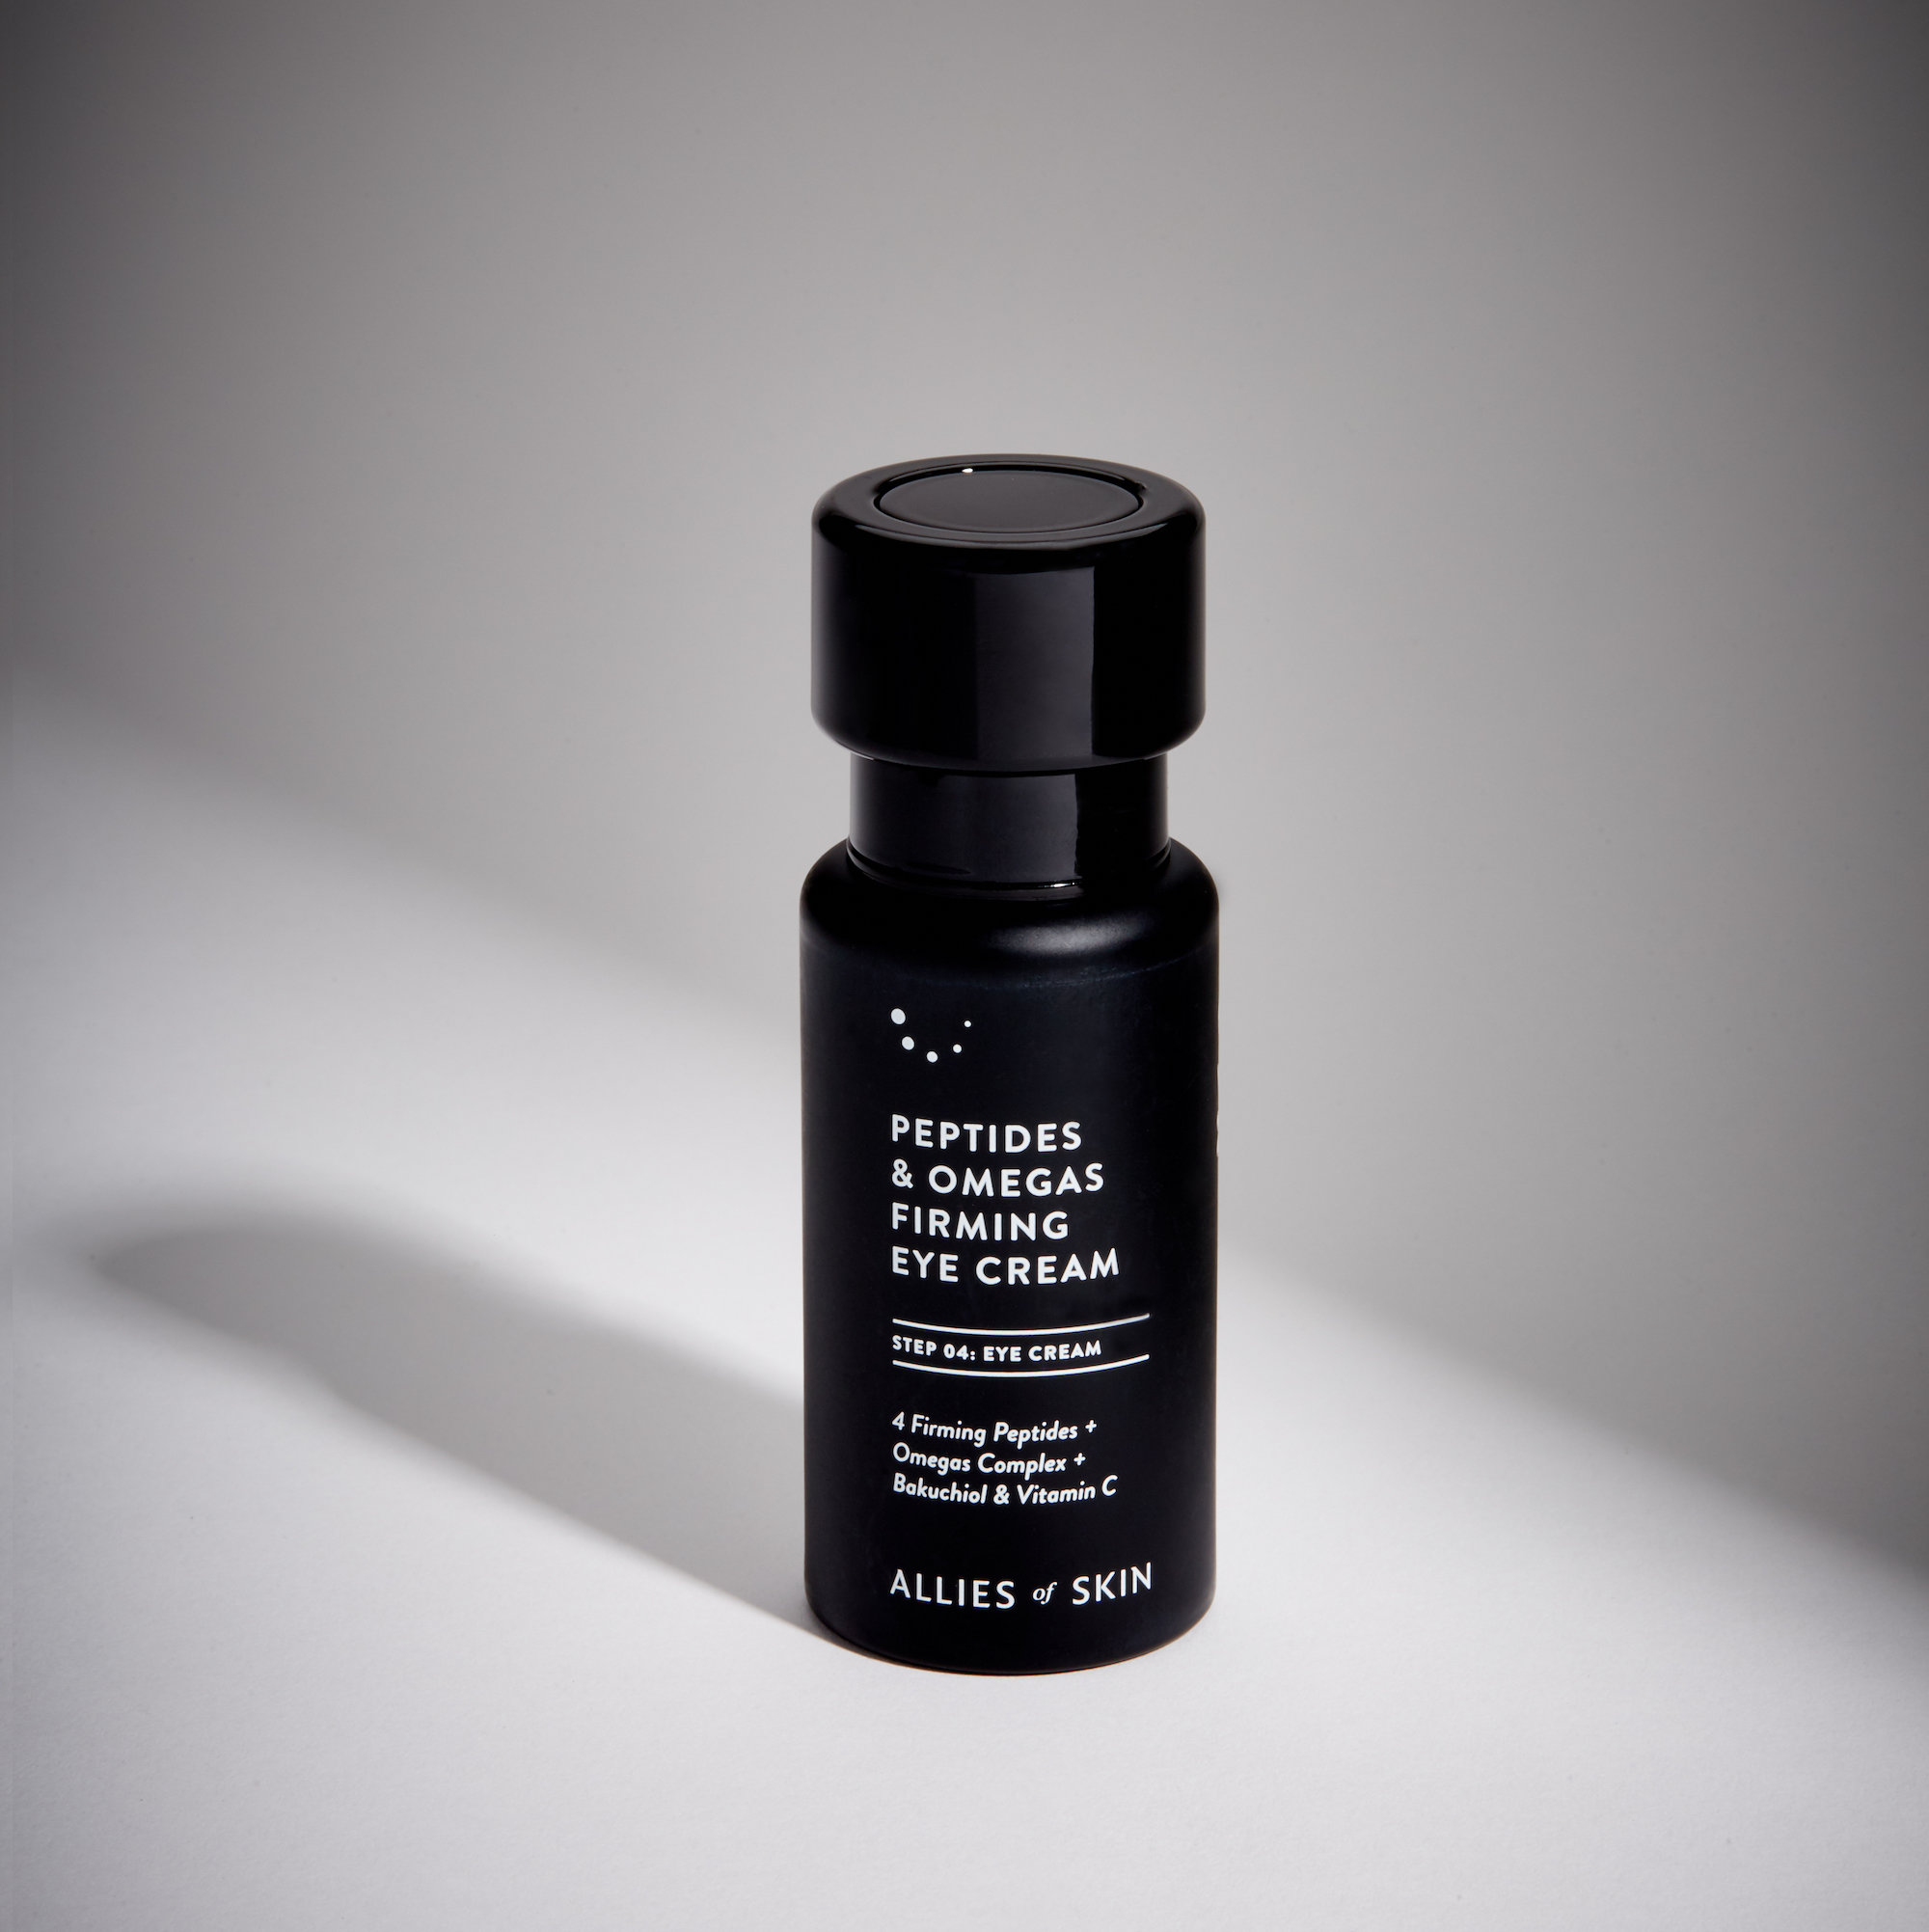 Alternate product image for Peptides & Omegas Firming Eye Cream shown with the description.